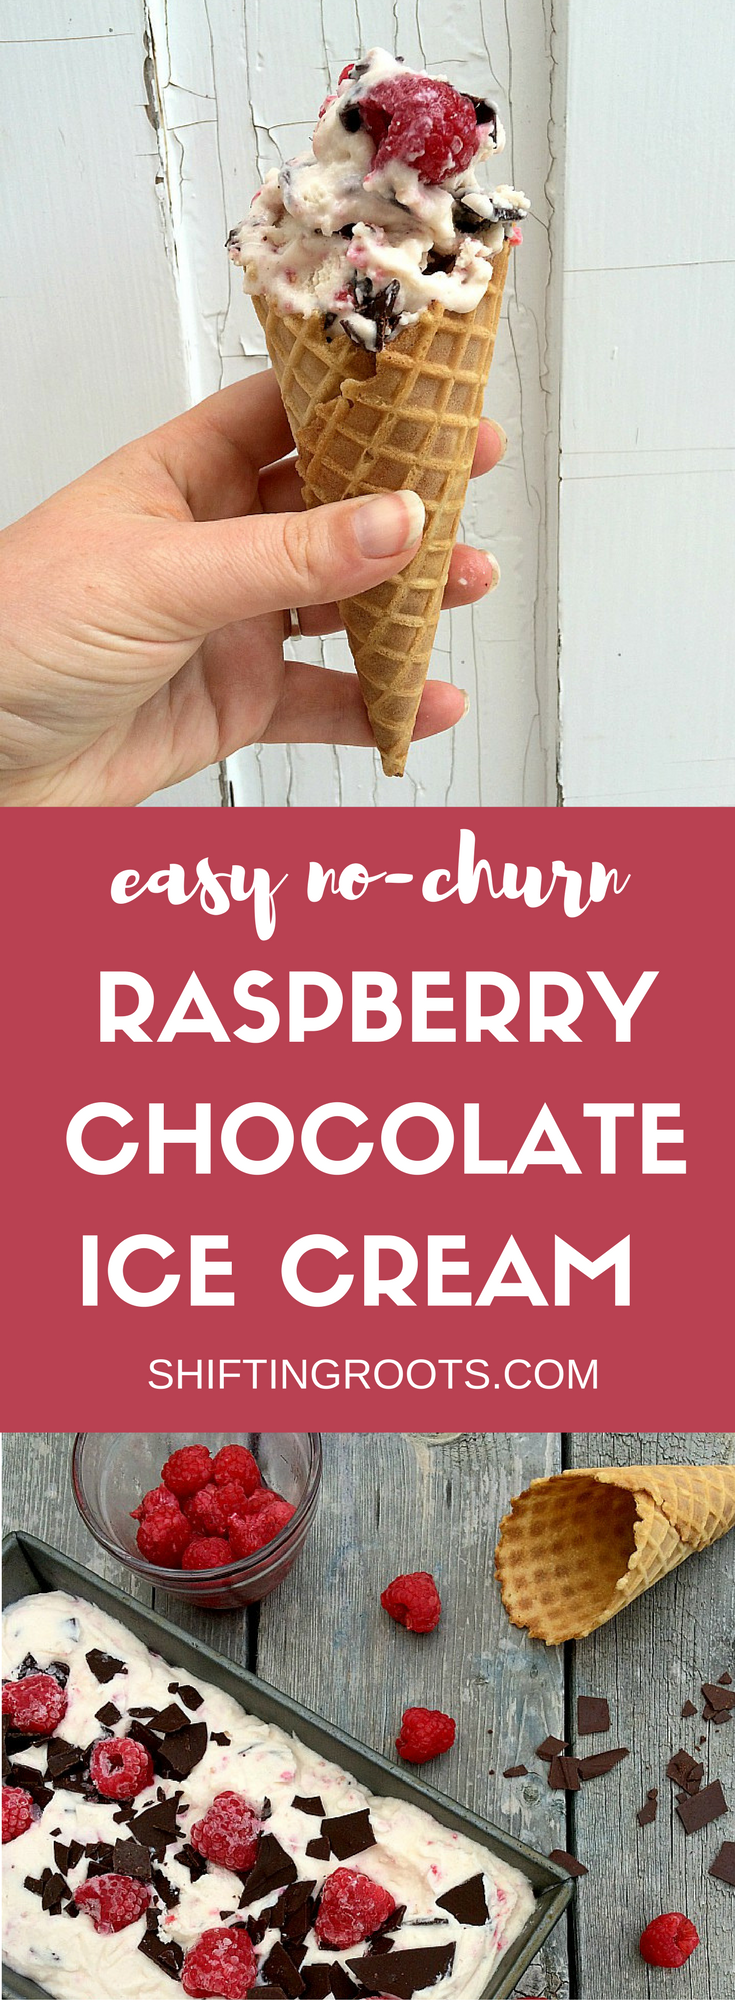 No churn raspberry chocolate ice cream is the perfect treat to beat the summer heat! An easy recipe you can make with your kids, after forcing them to pick berries with you.